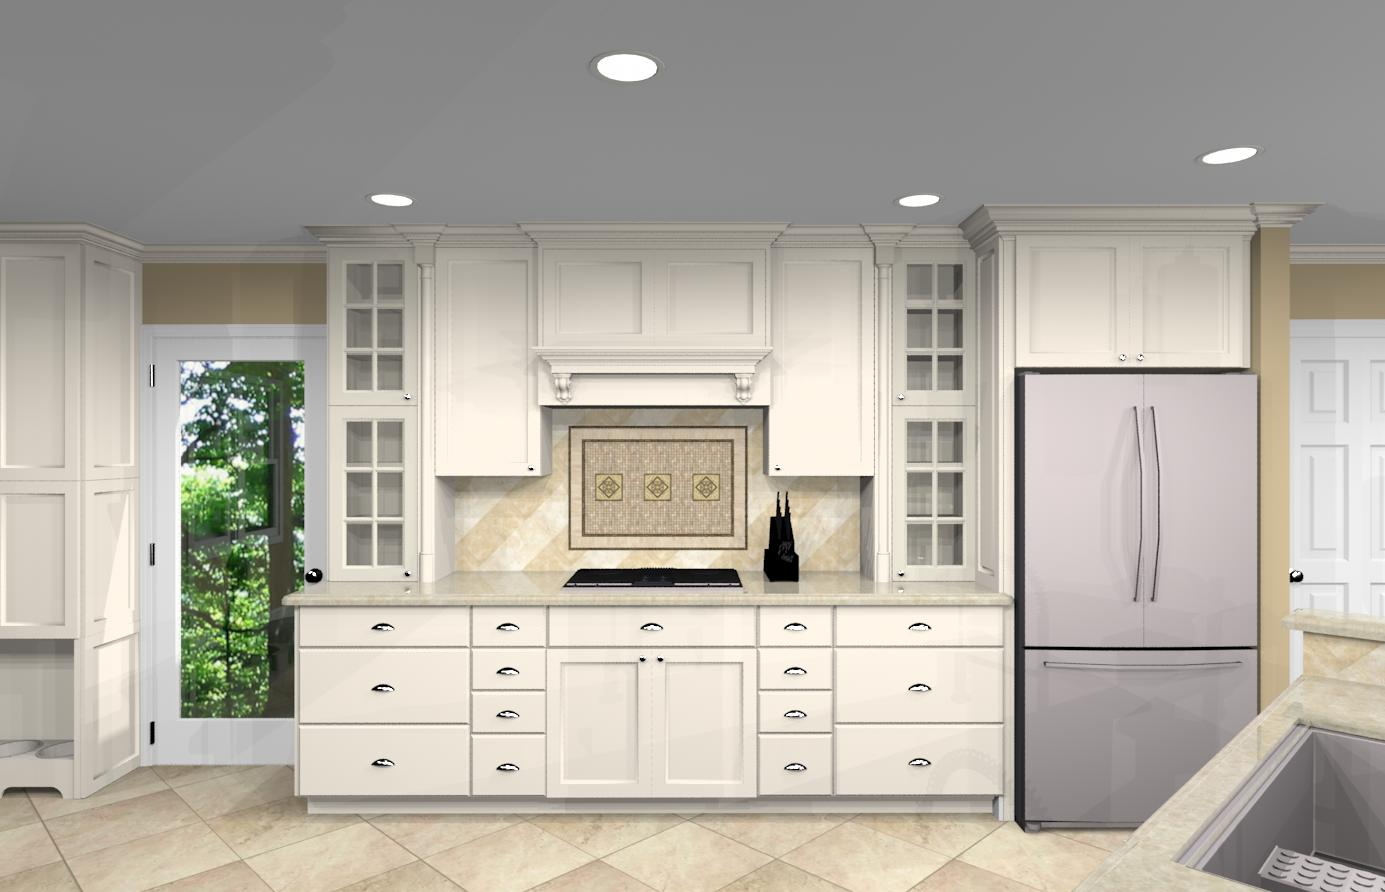 Merveilleux Kitchen Remodeling Design In Watchung, NJ 07069 (8)